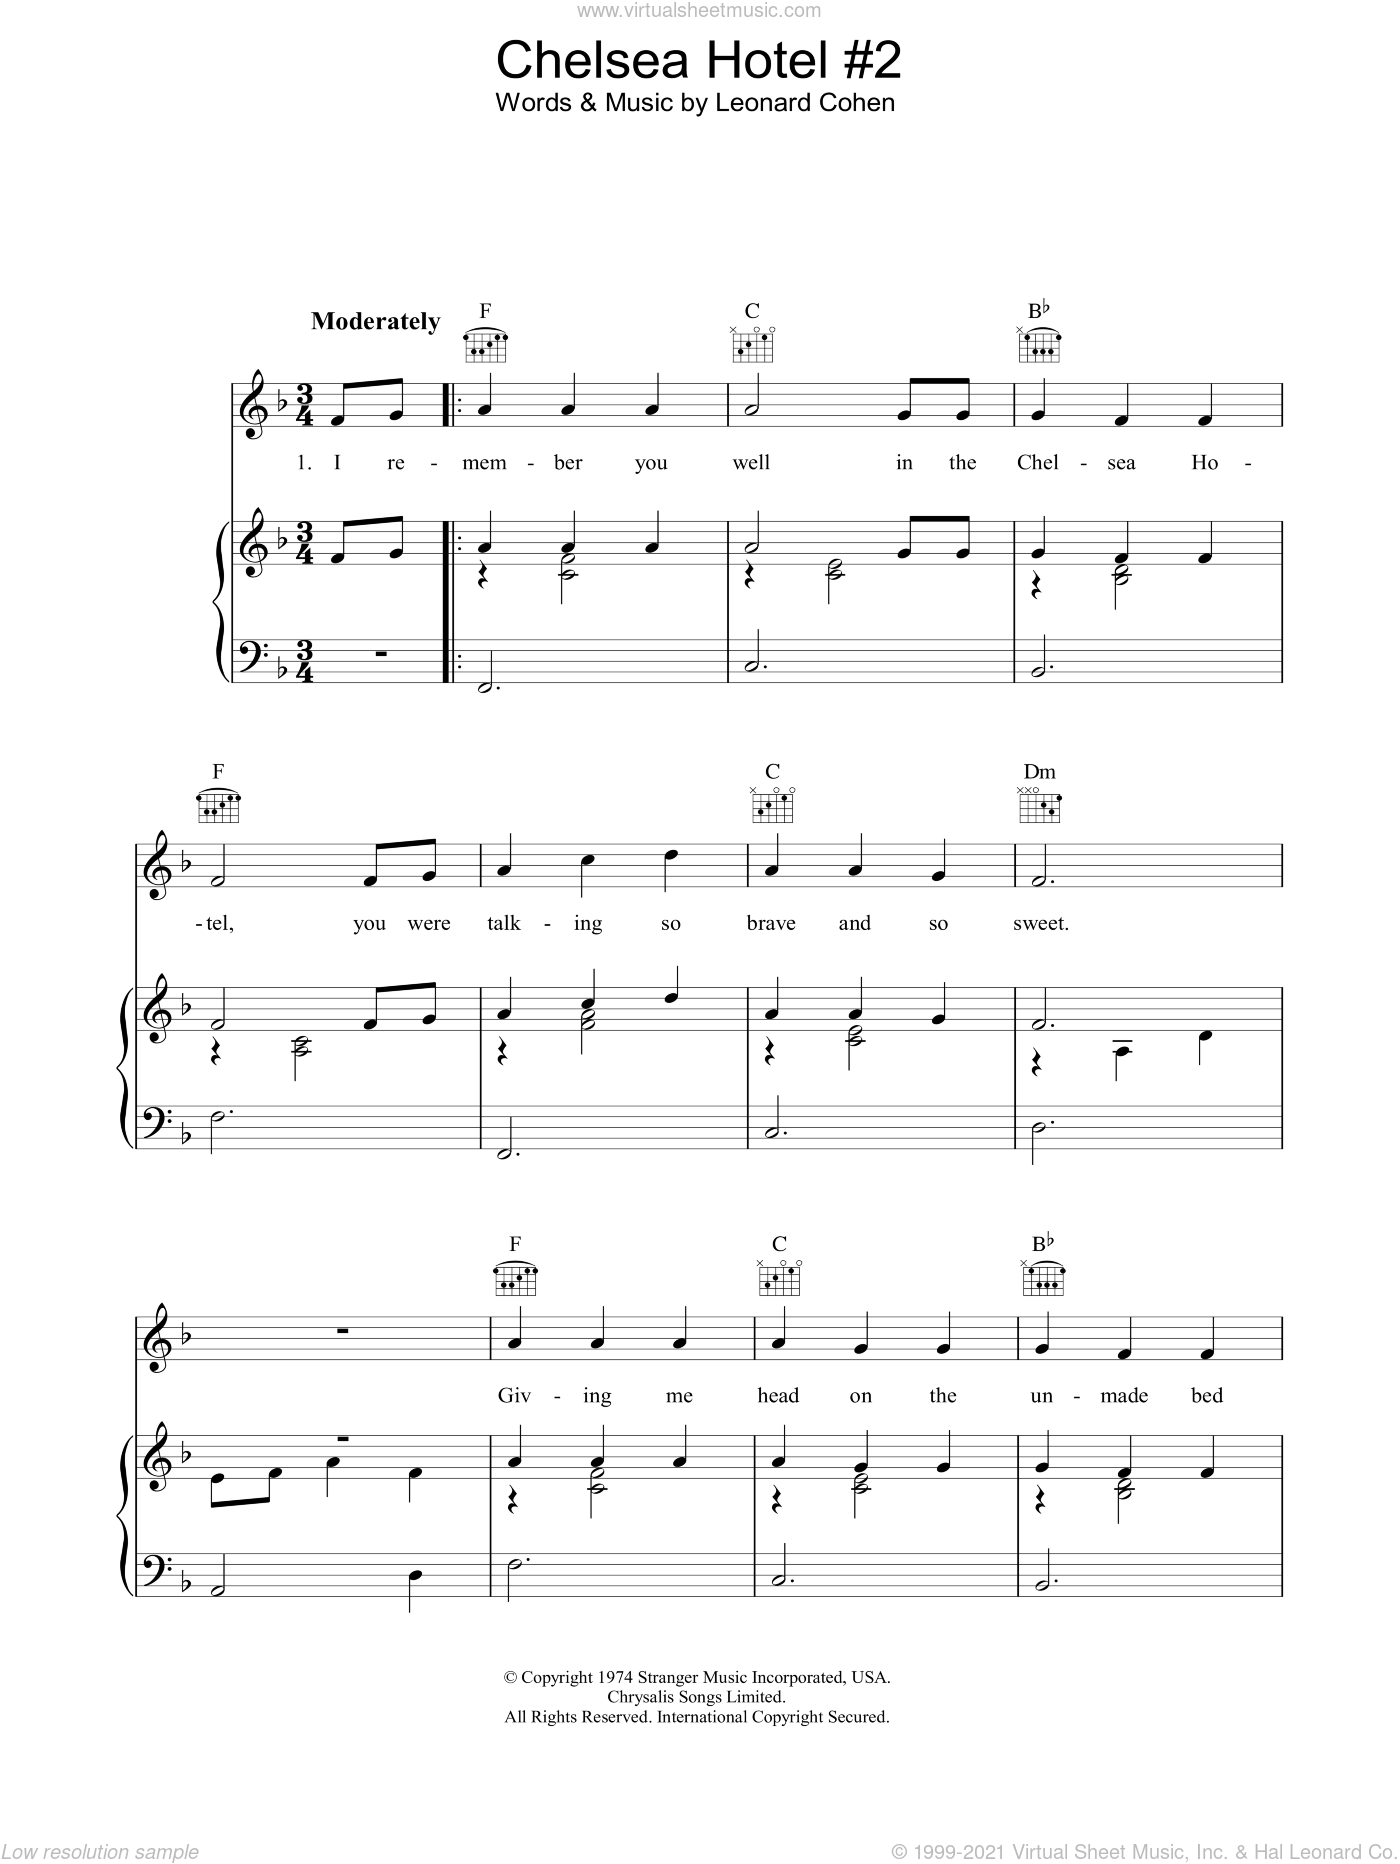 Chelsea Hotel #2 sheet music for voice, piano or guitar by Leonard Cohen, intermediate skill level